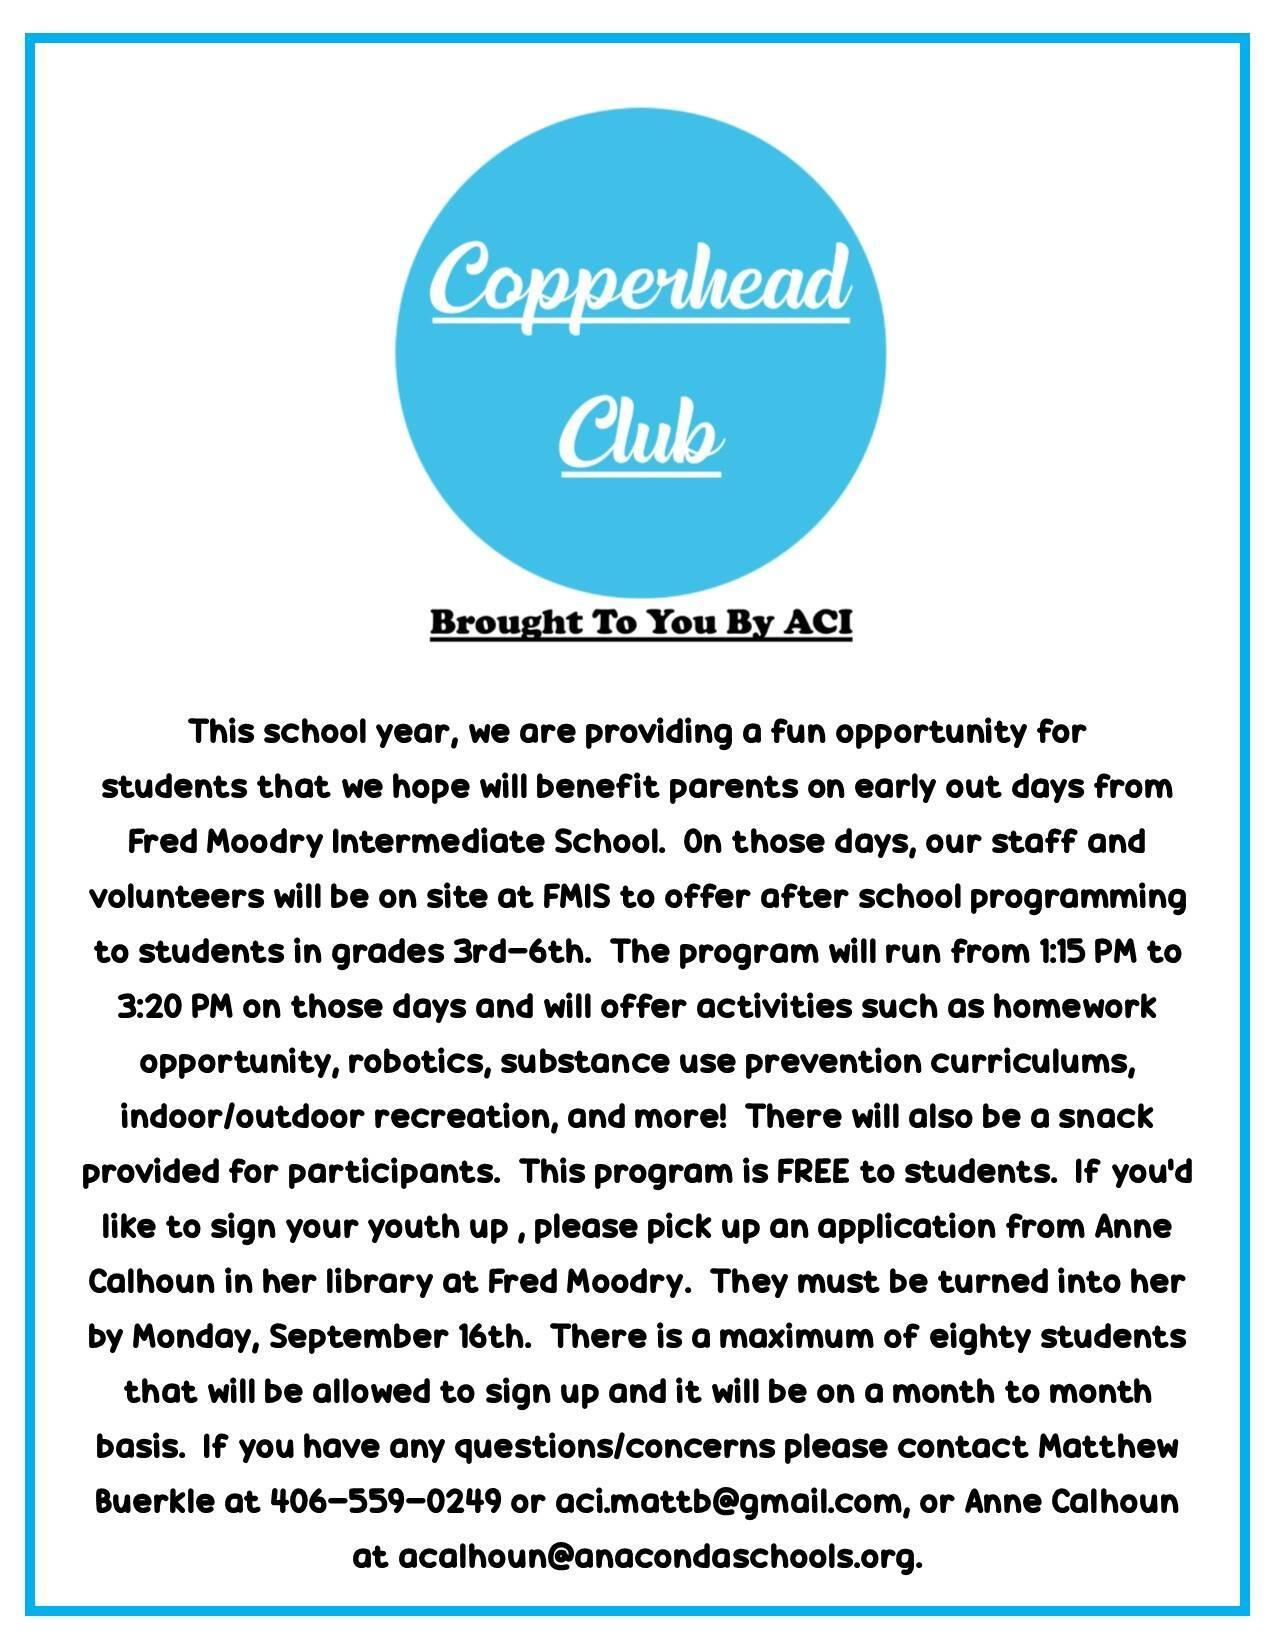 Copperhead Club Letter